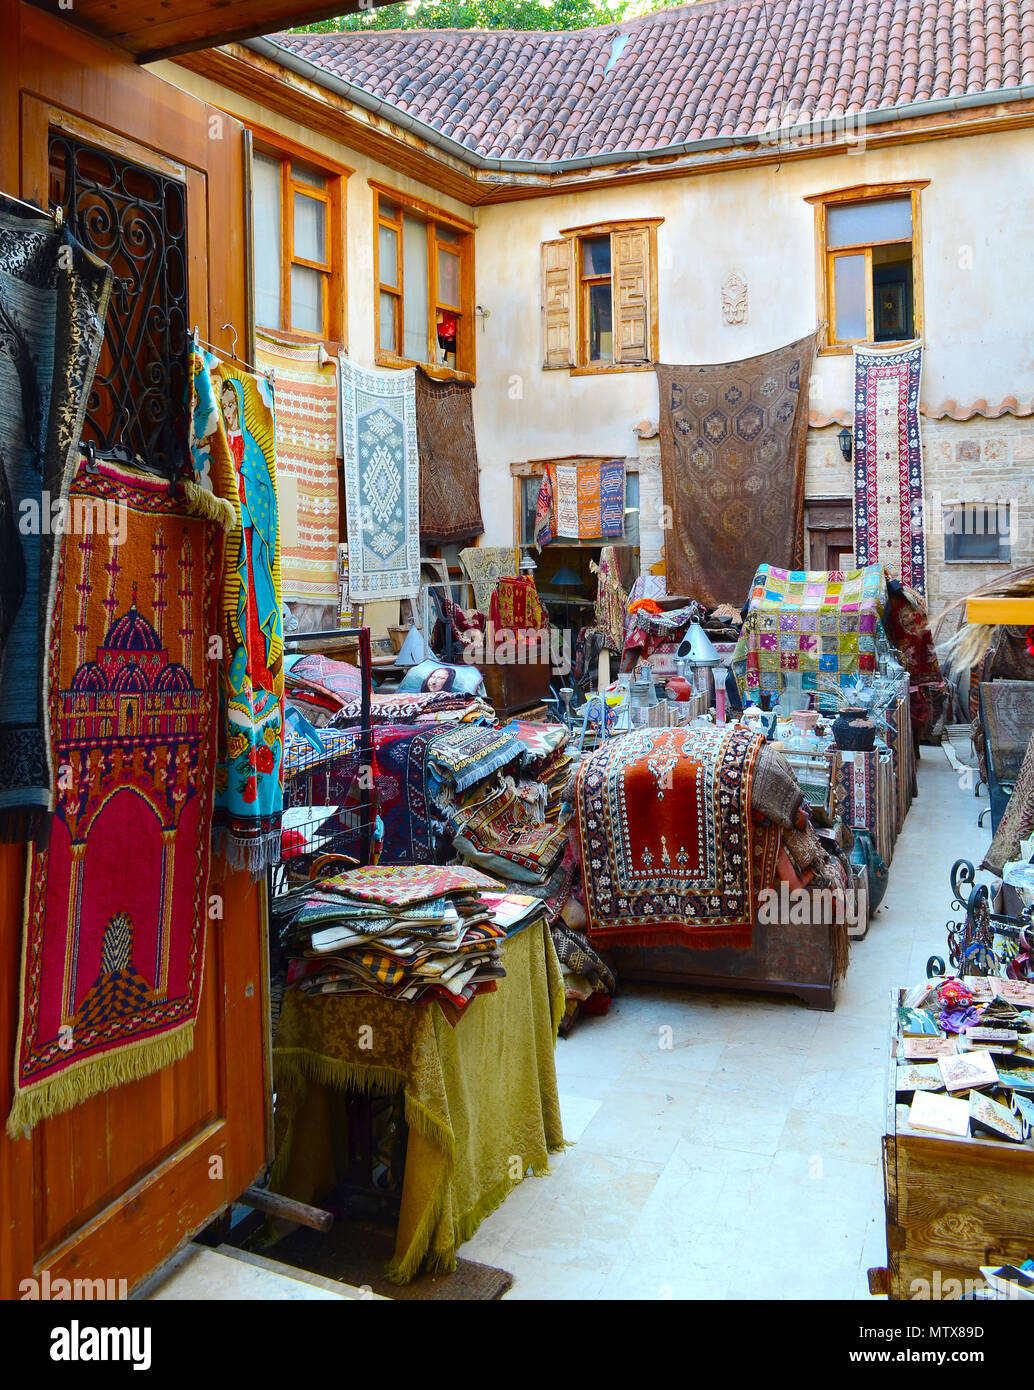 Store carpets and old things in the easten town. - Stock Image